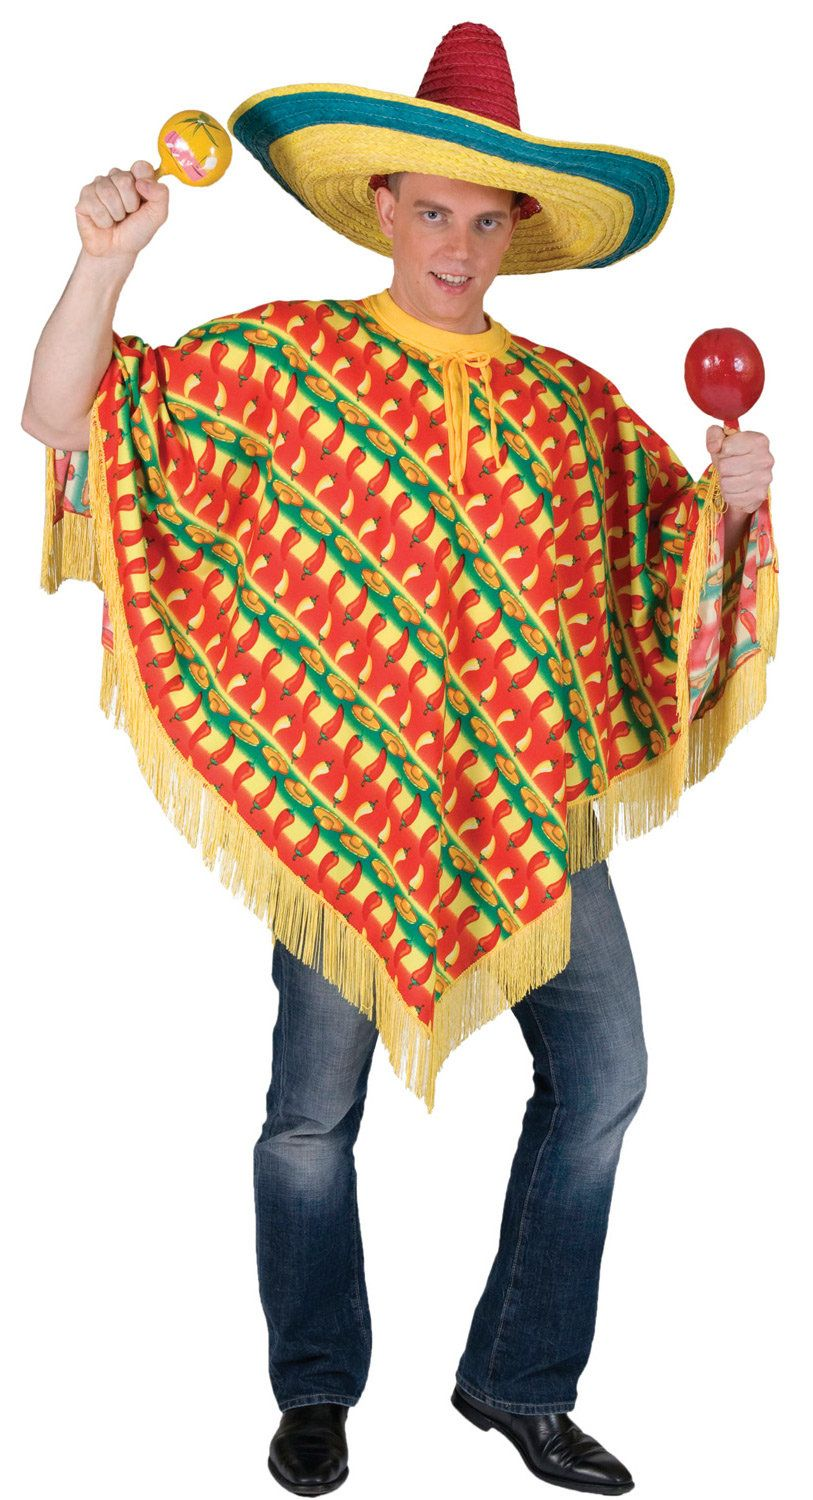 dress for your next party or enjoy halloween fun as the fiesta mexican poncho adult costume - Mexican Themed Halloween Costumes